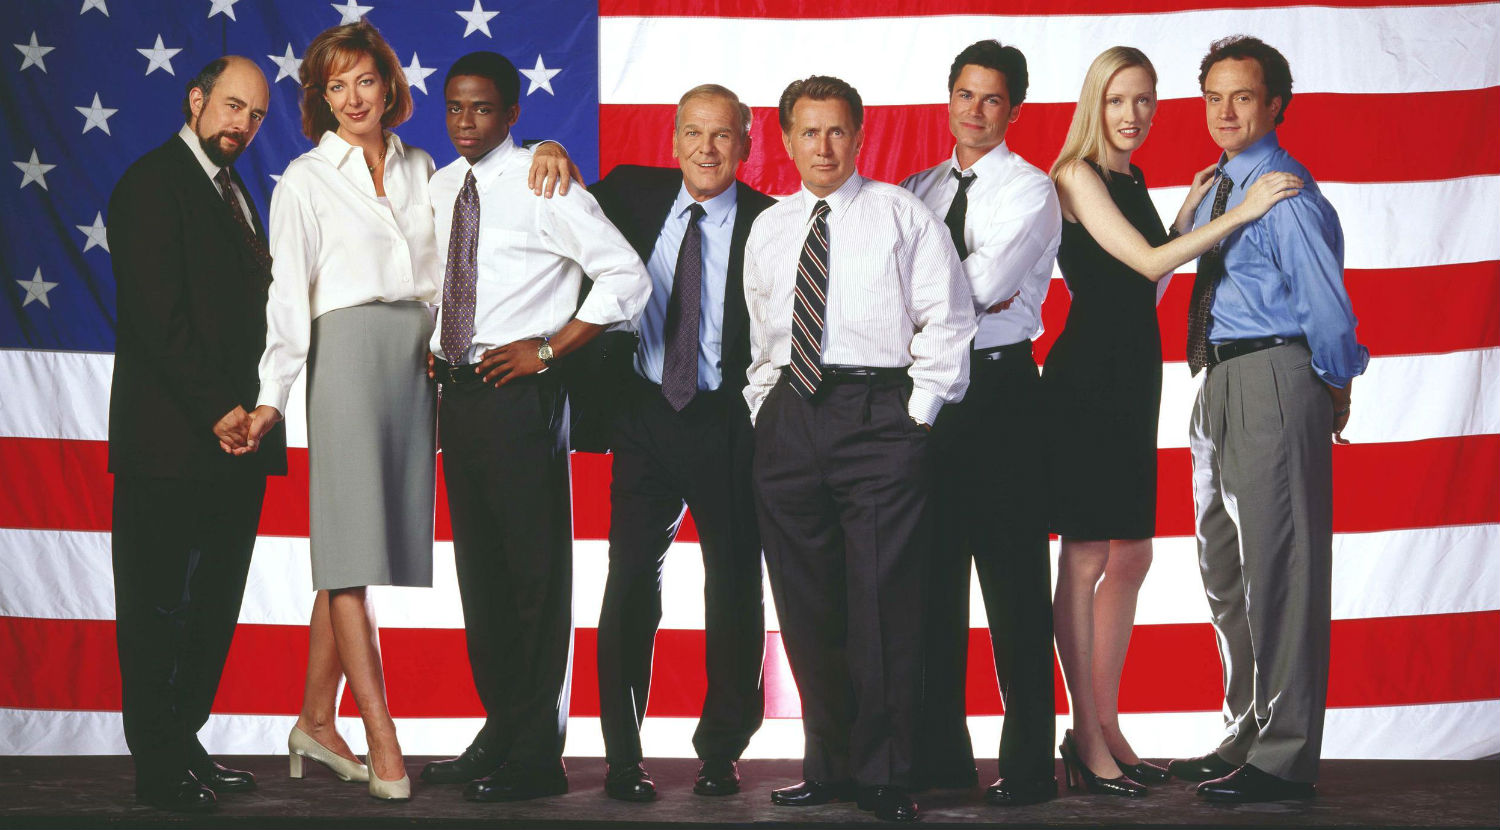 Seriencheck: The West Wing